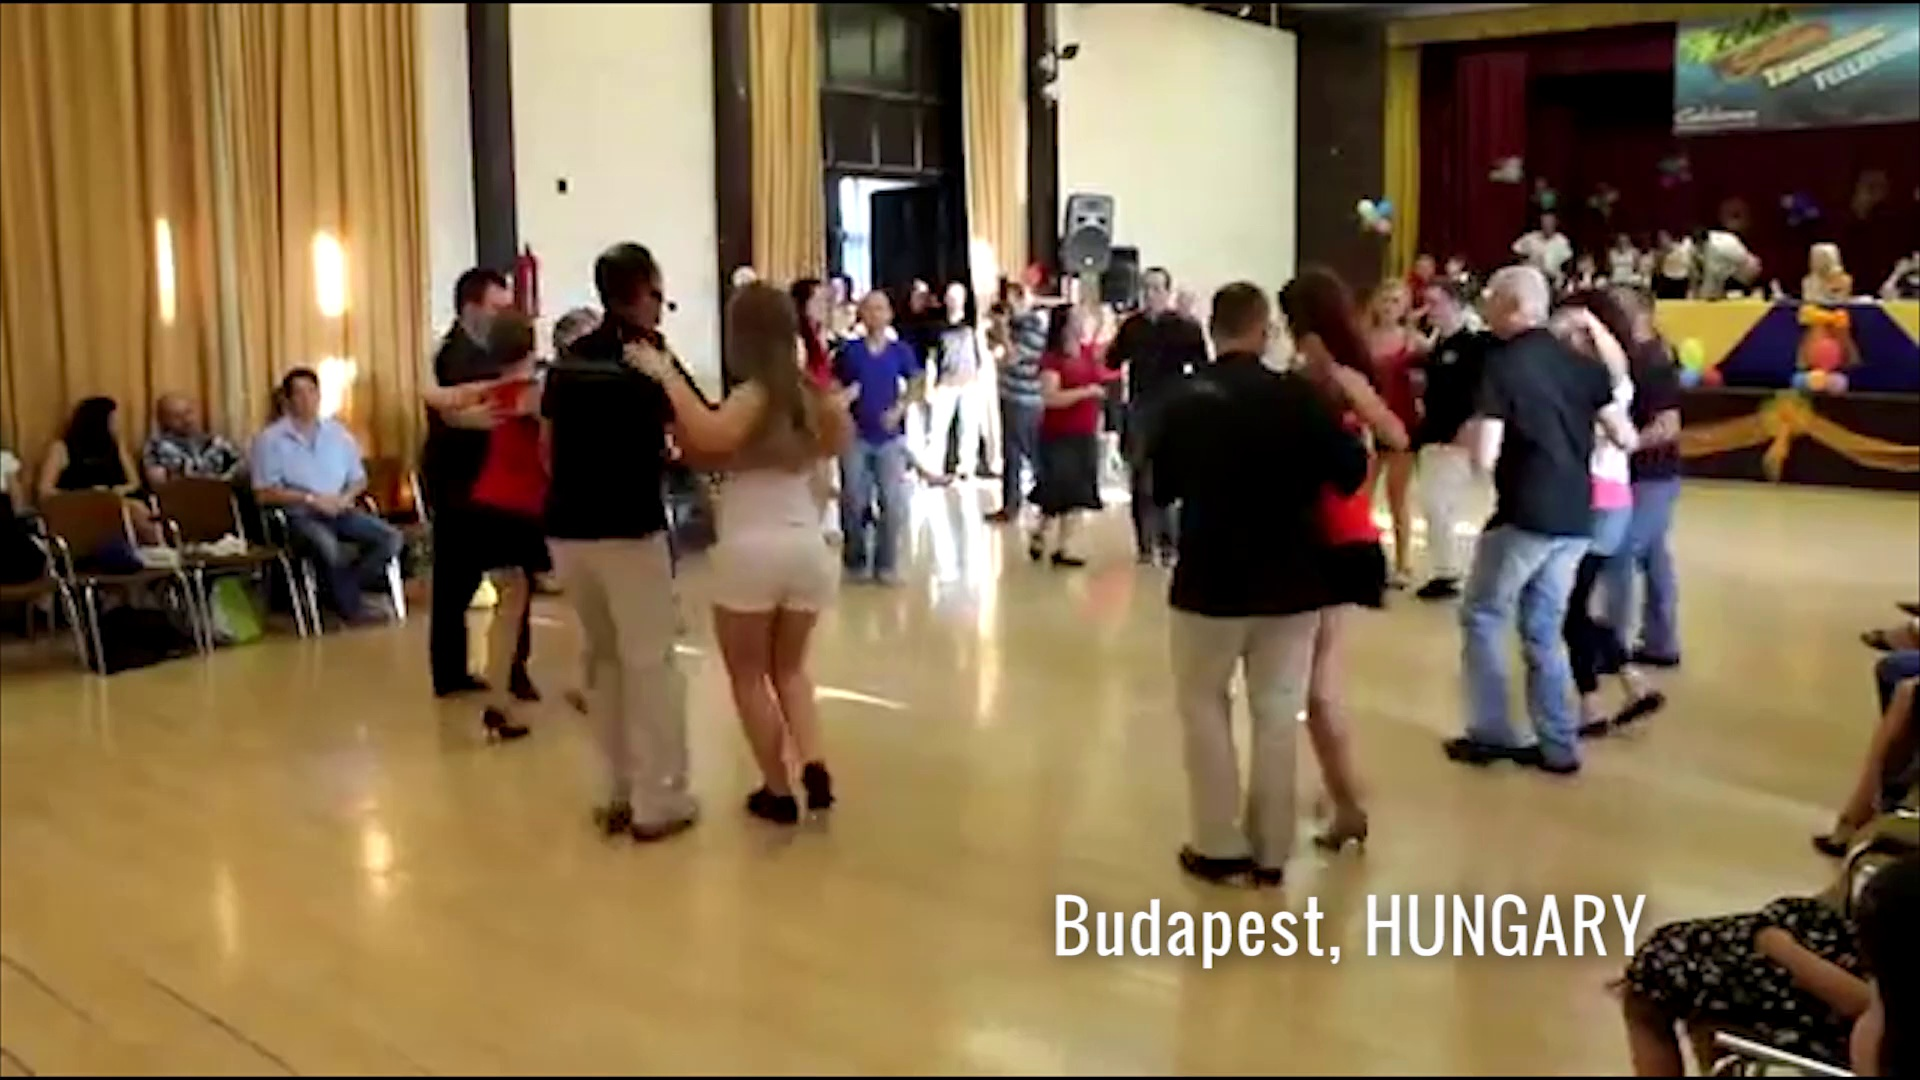 300 salsa dancers from 15 countries, dancing to 1 song